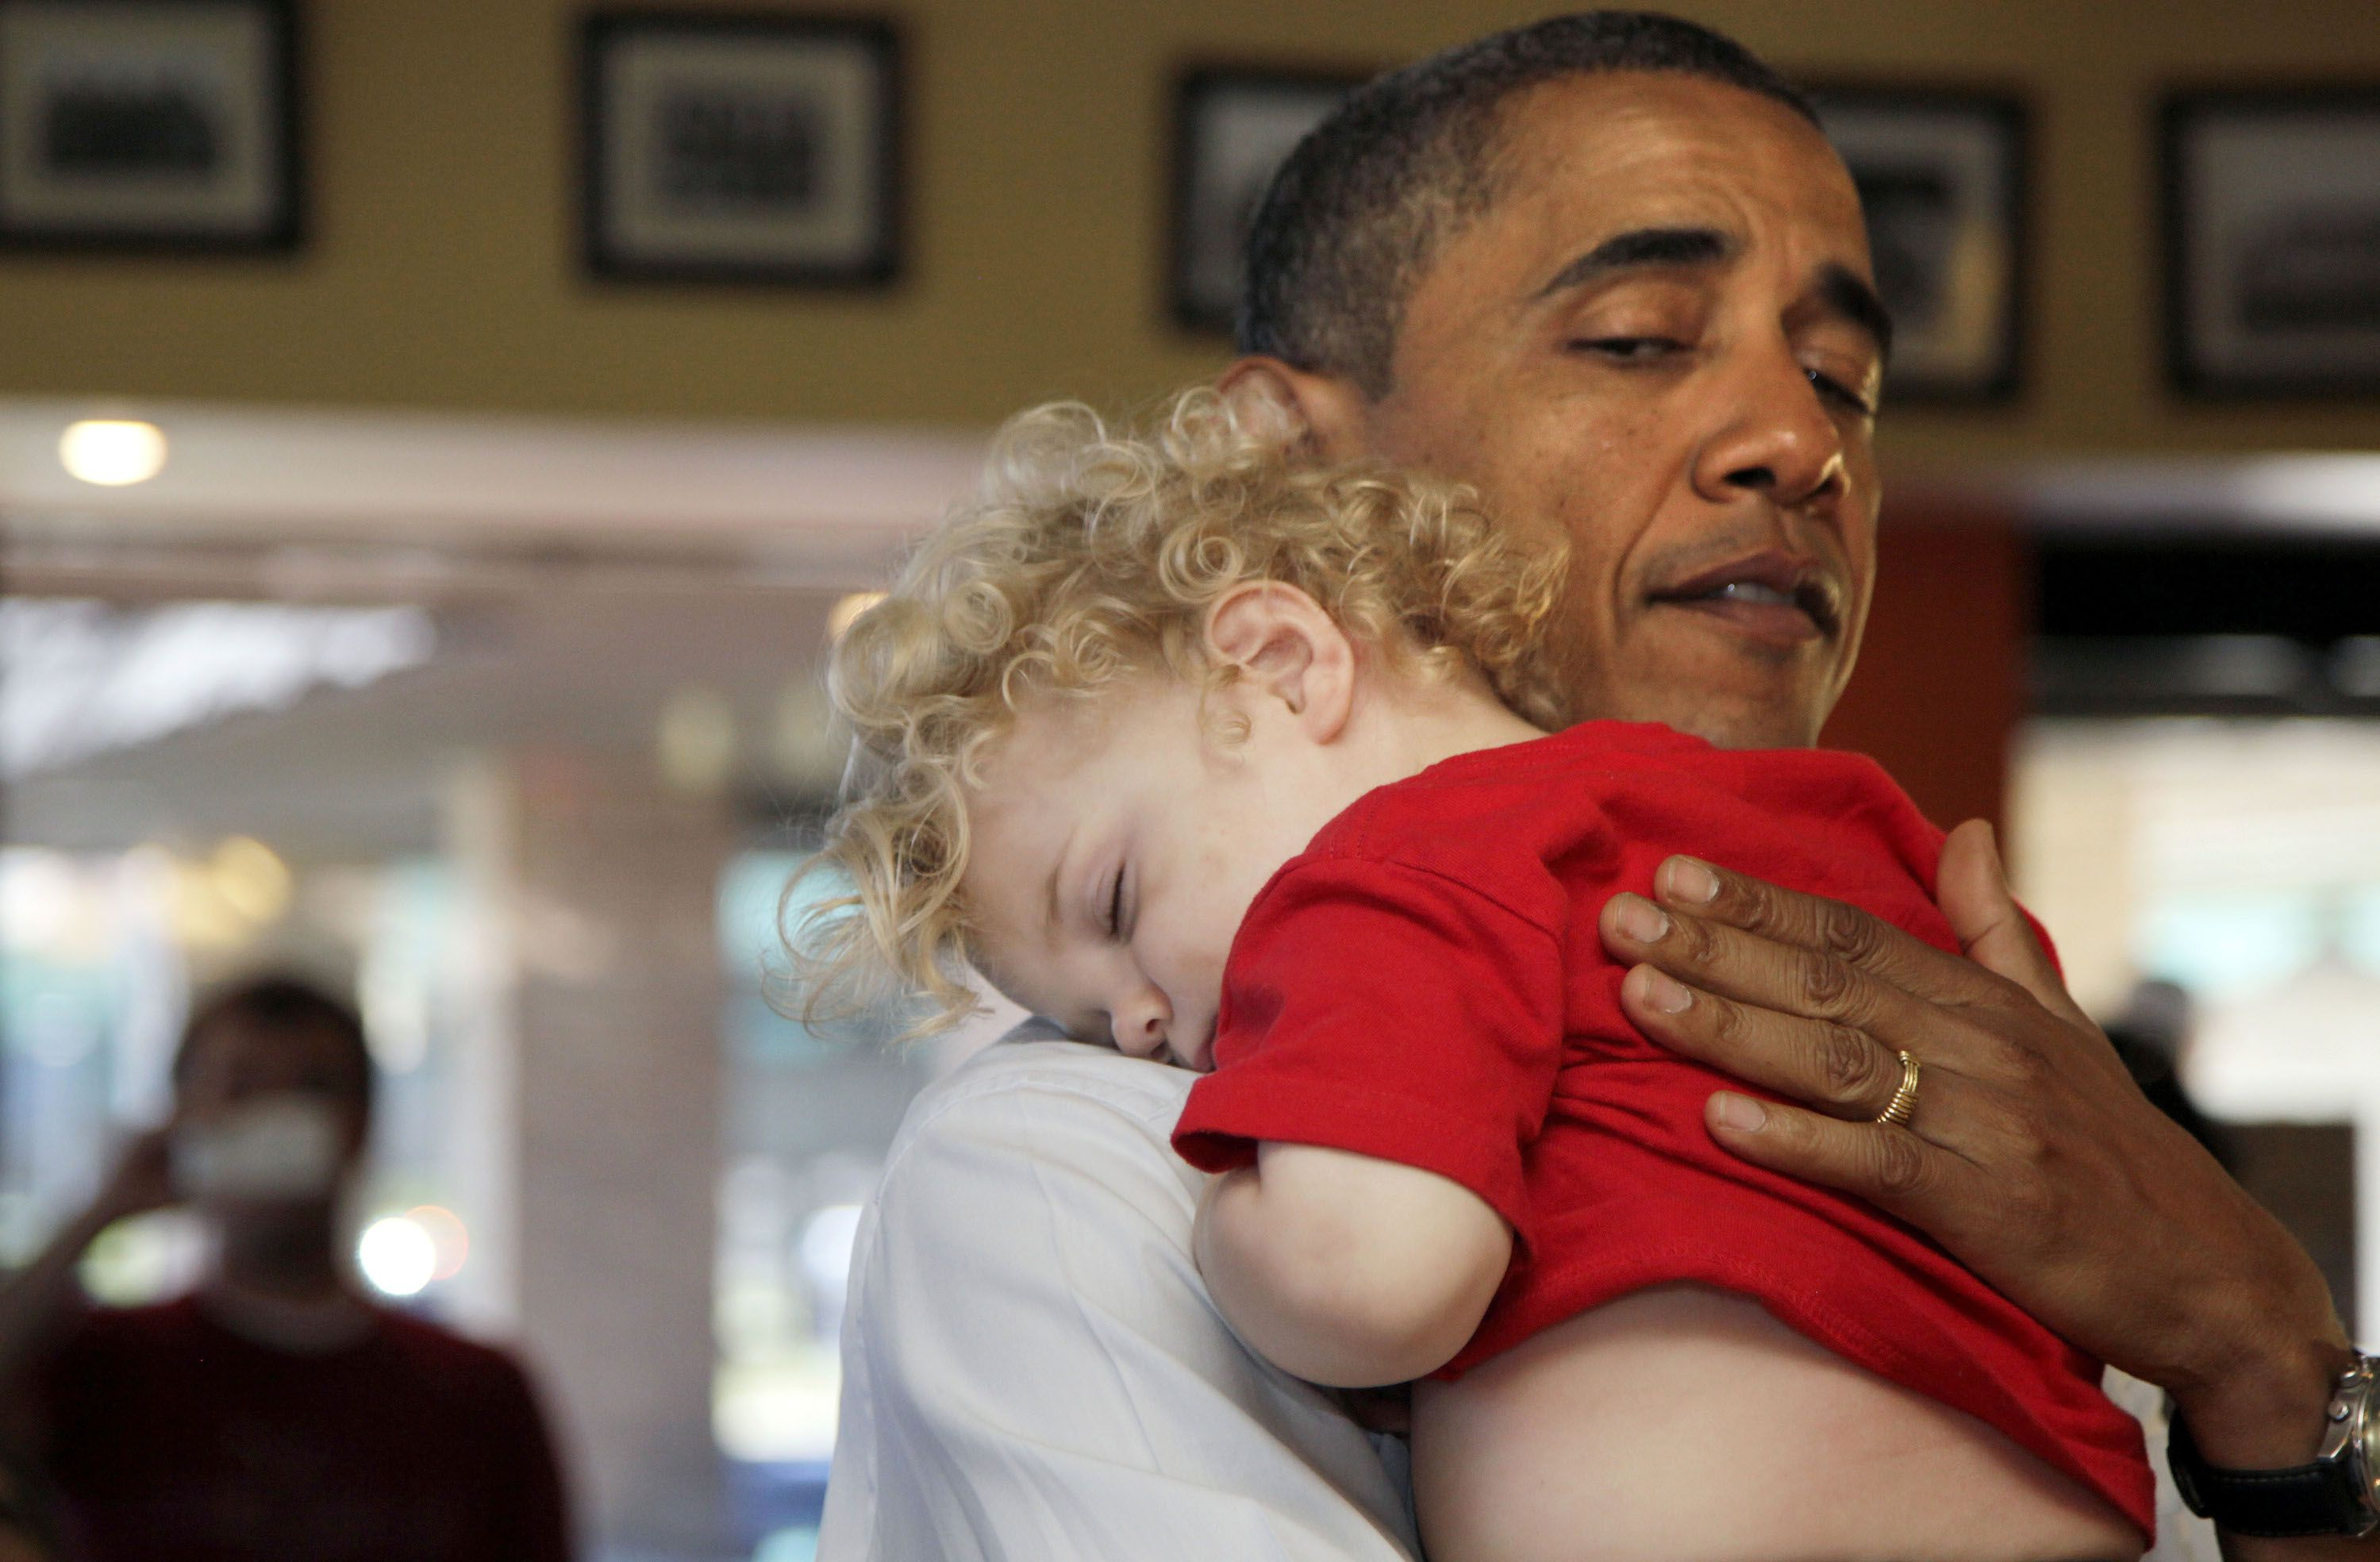 President Barack Obama holds a sleeping baby boy as he visits Ross' restaurant in Bettendorf, Iowa, Tuesday, June 28, 2011. (AP Photo/Carolyn Kaster)